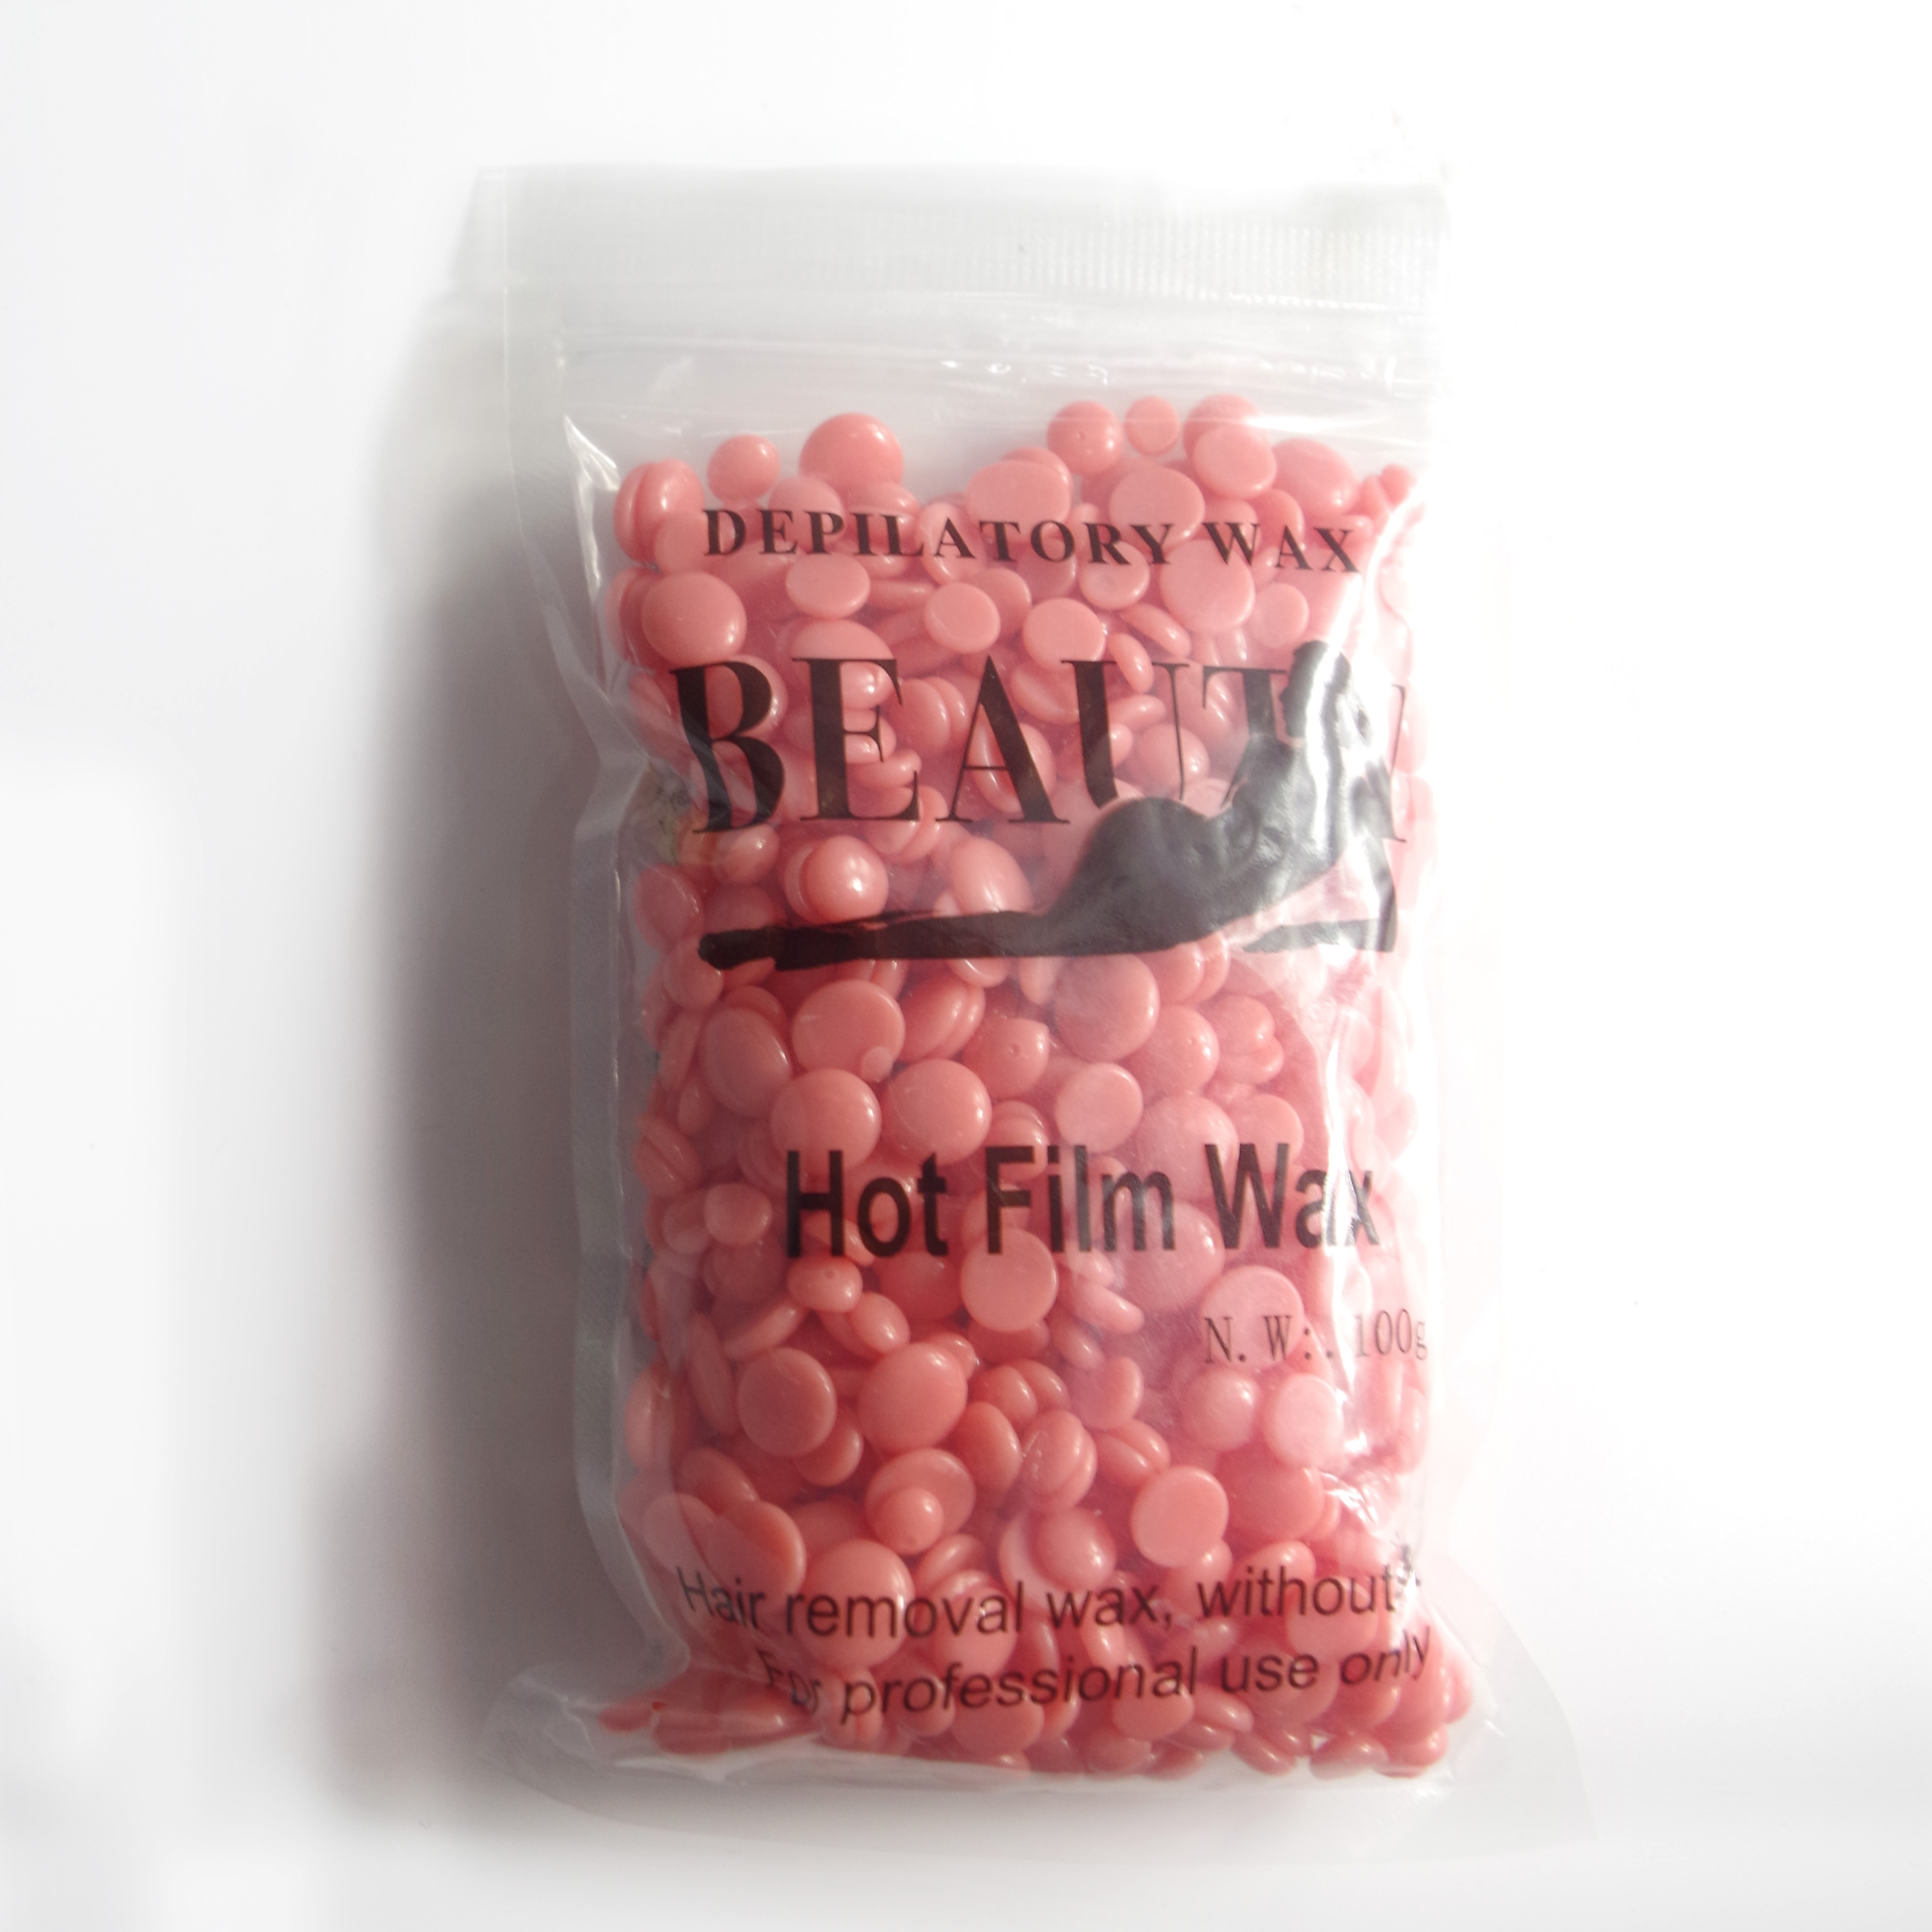 100g Strawberry Wax Hard Beans for Depilation Remover No Str